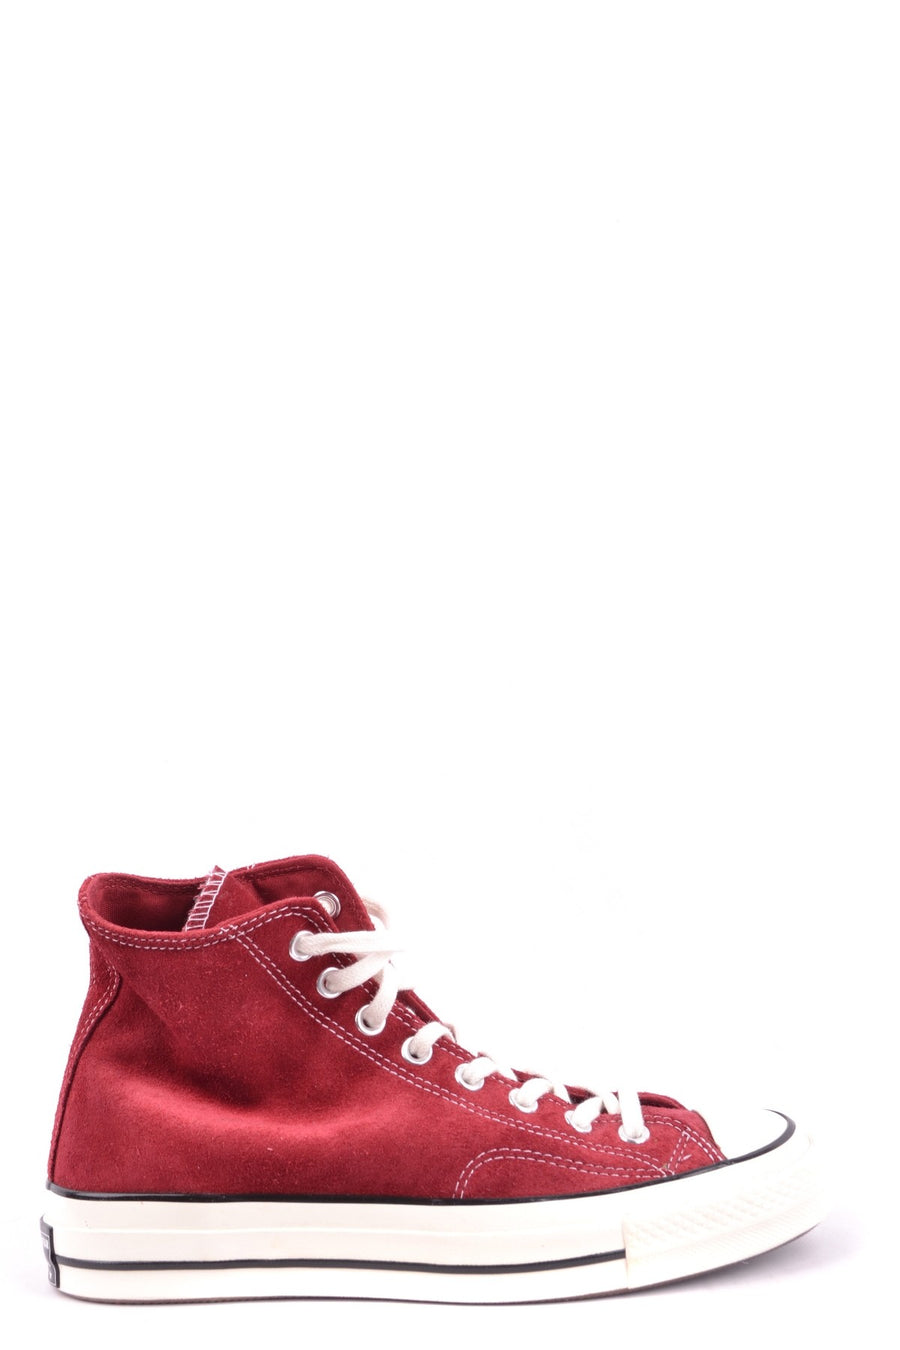 Calzature & Accessori 46,5 marrone chiaro per donna Converse All Star